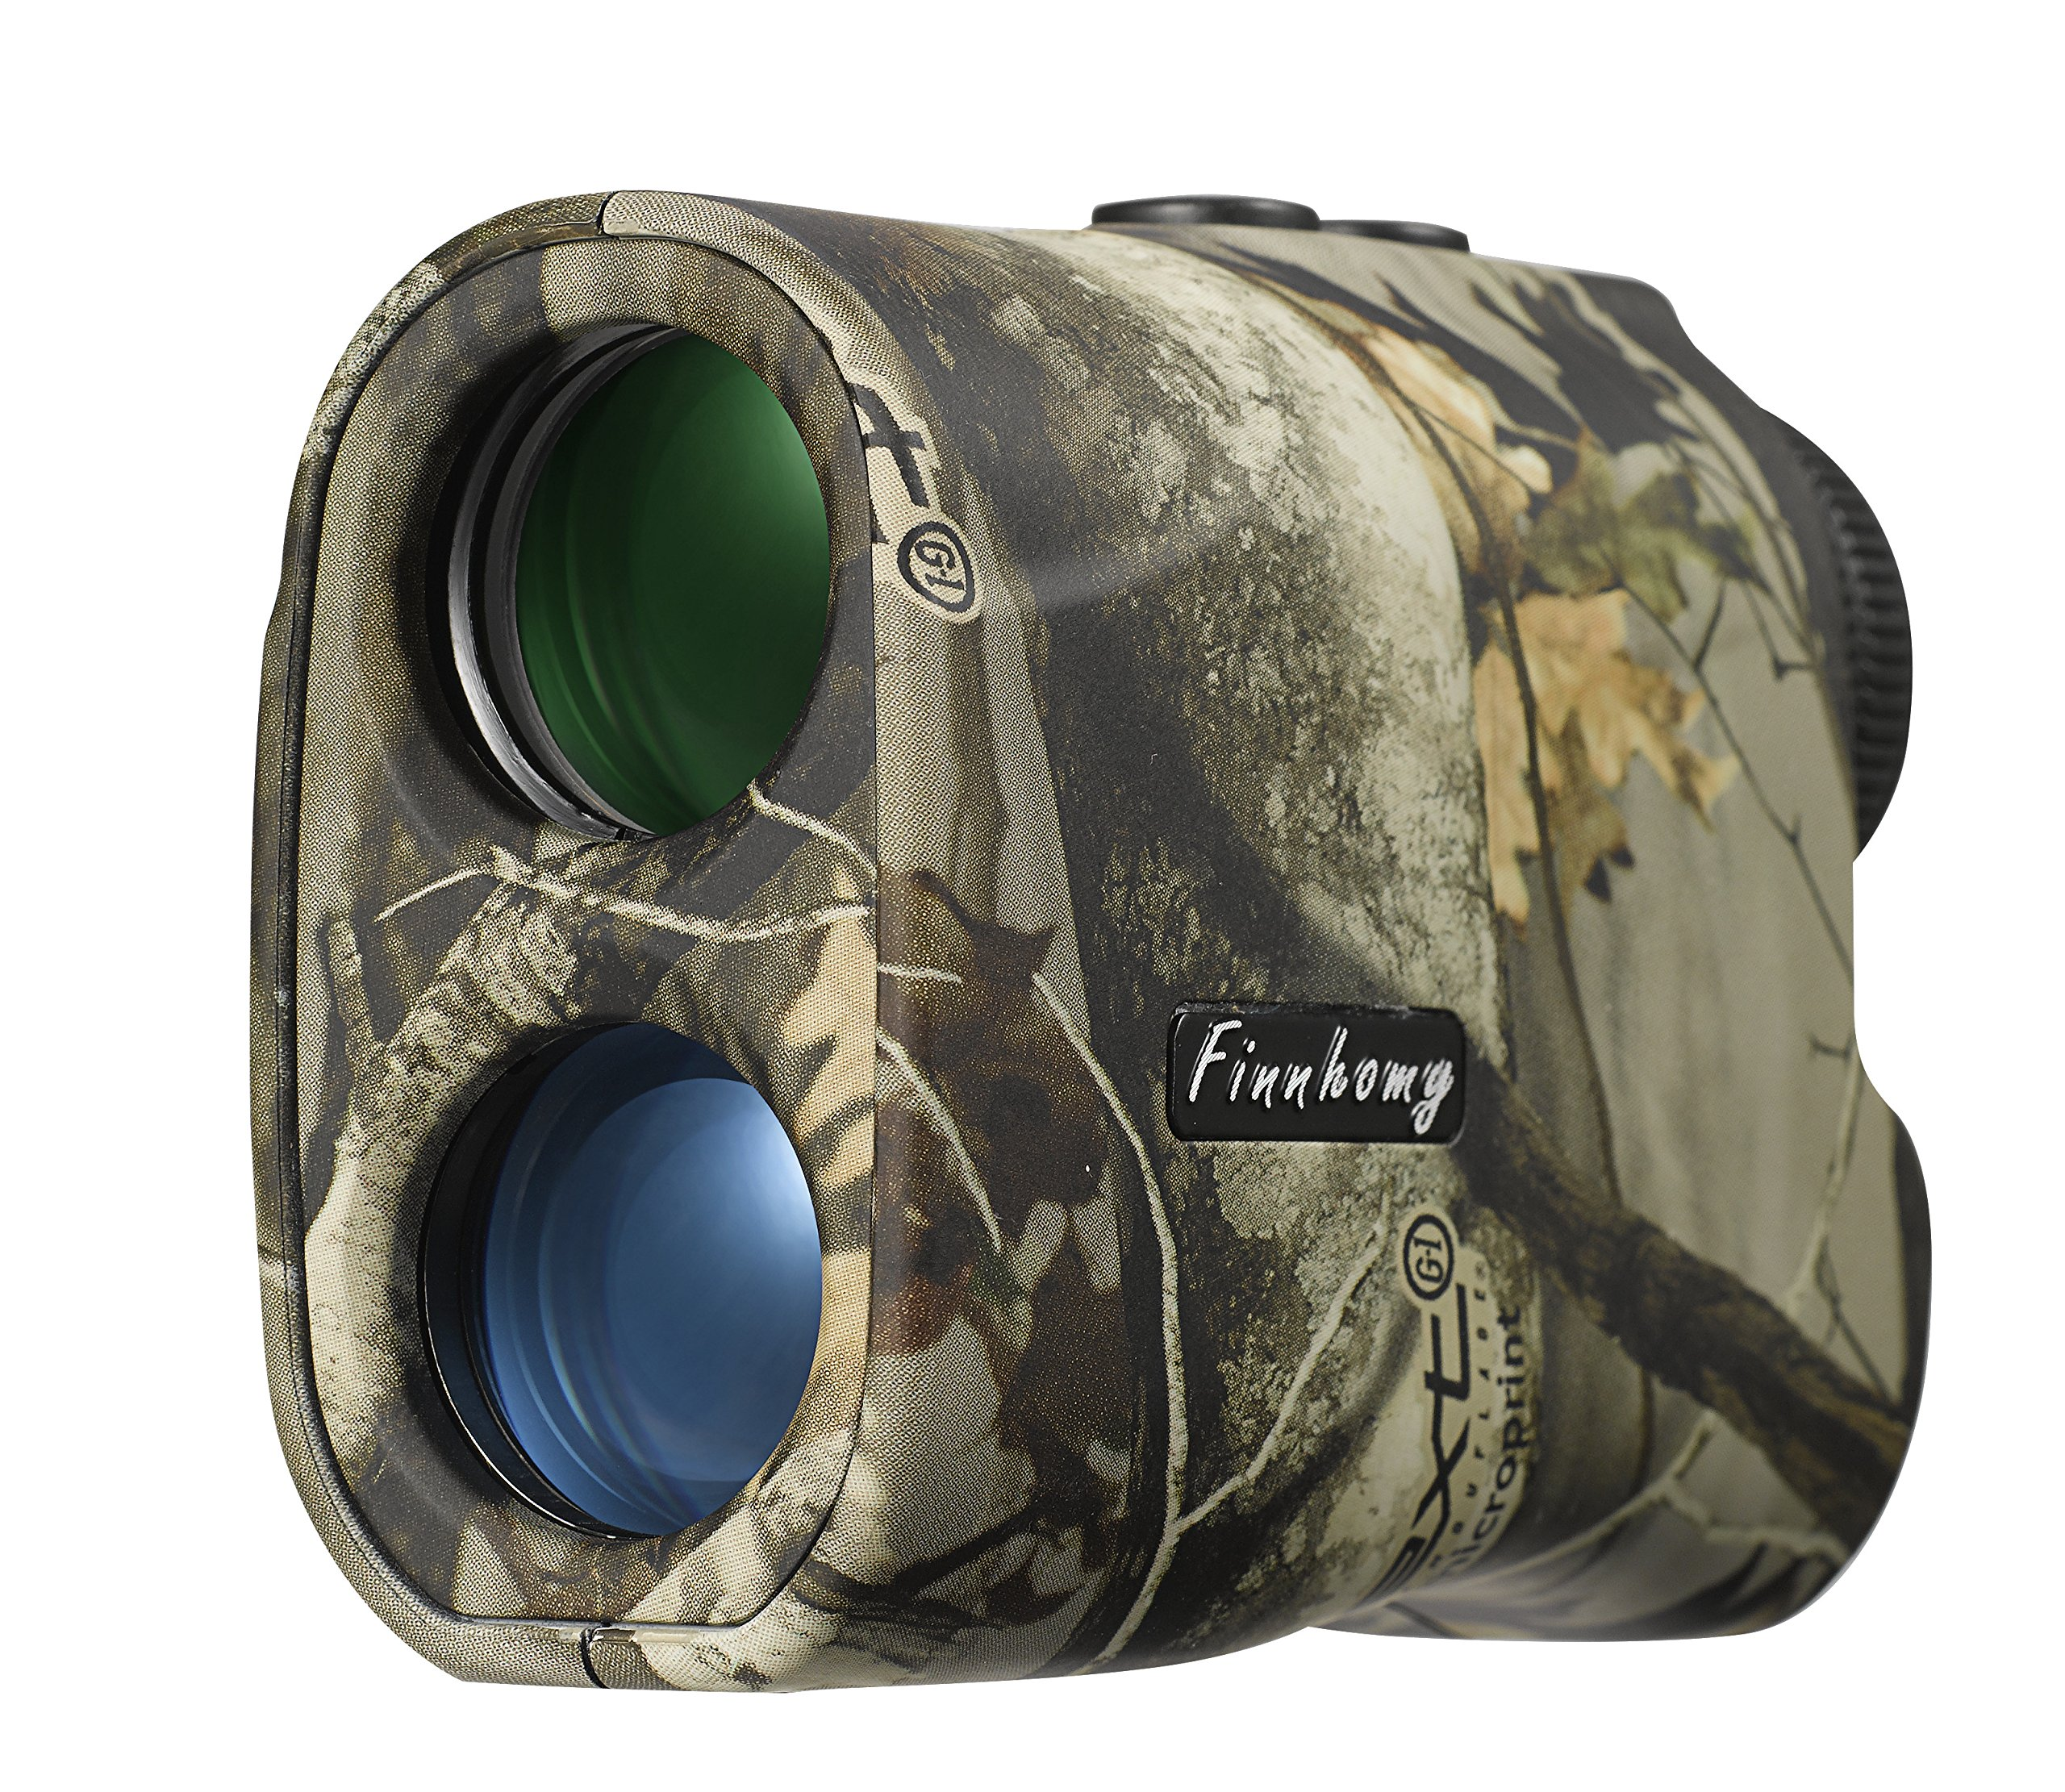 Finnhomy 6 x 25mm Laser Binocular Rangefinder Distance Range Finder Speed Distance Measurement Scope 600 Yards Outdoor Activity Hunting Golf Racing Climbing Navigation Forestry Waterproof Free Battery